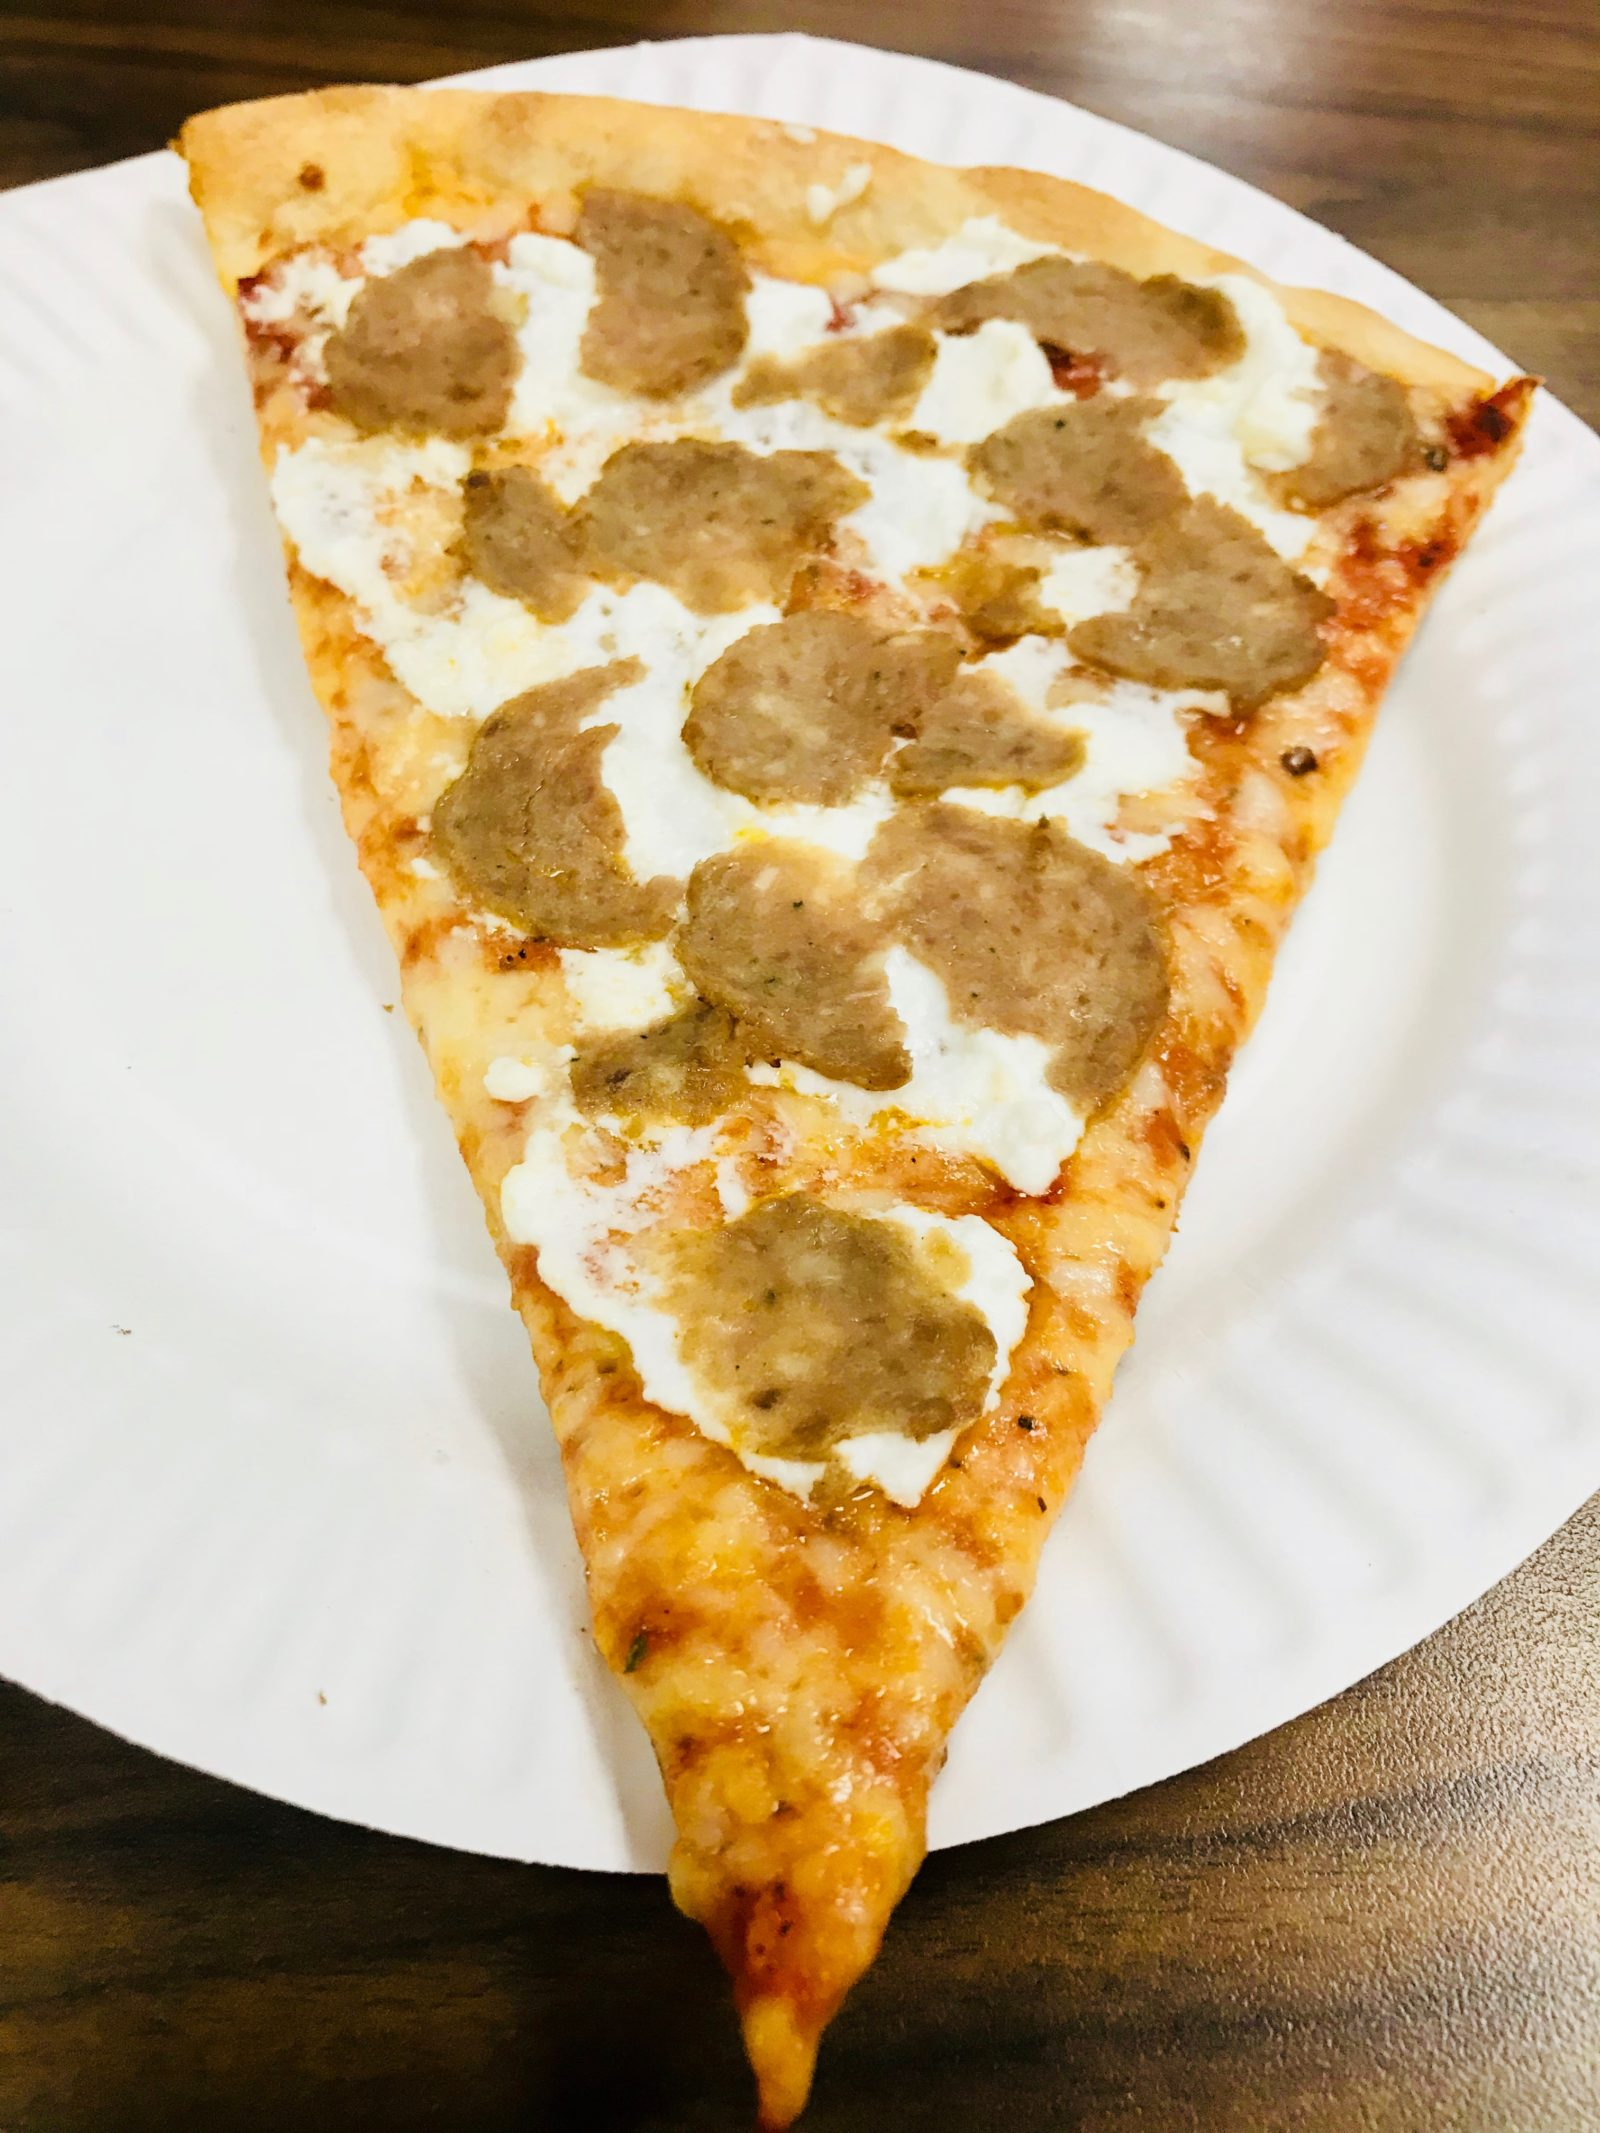 Pick of the Week - Ray's Pizza - Slice of Cheese with Meatball and Ricotta